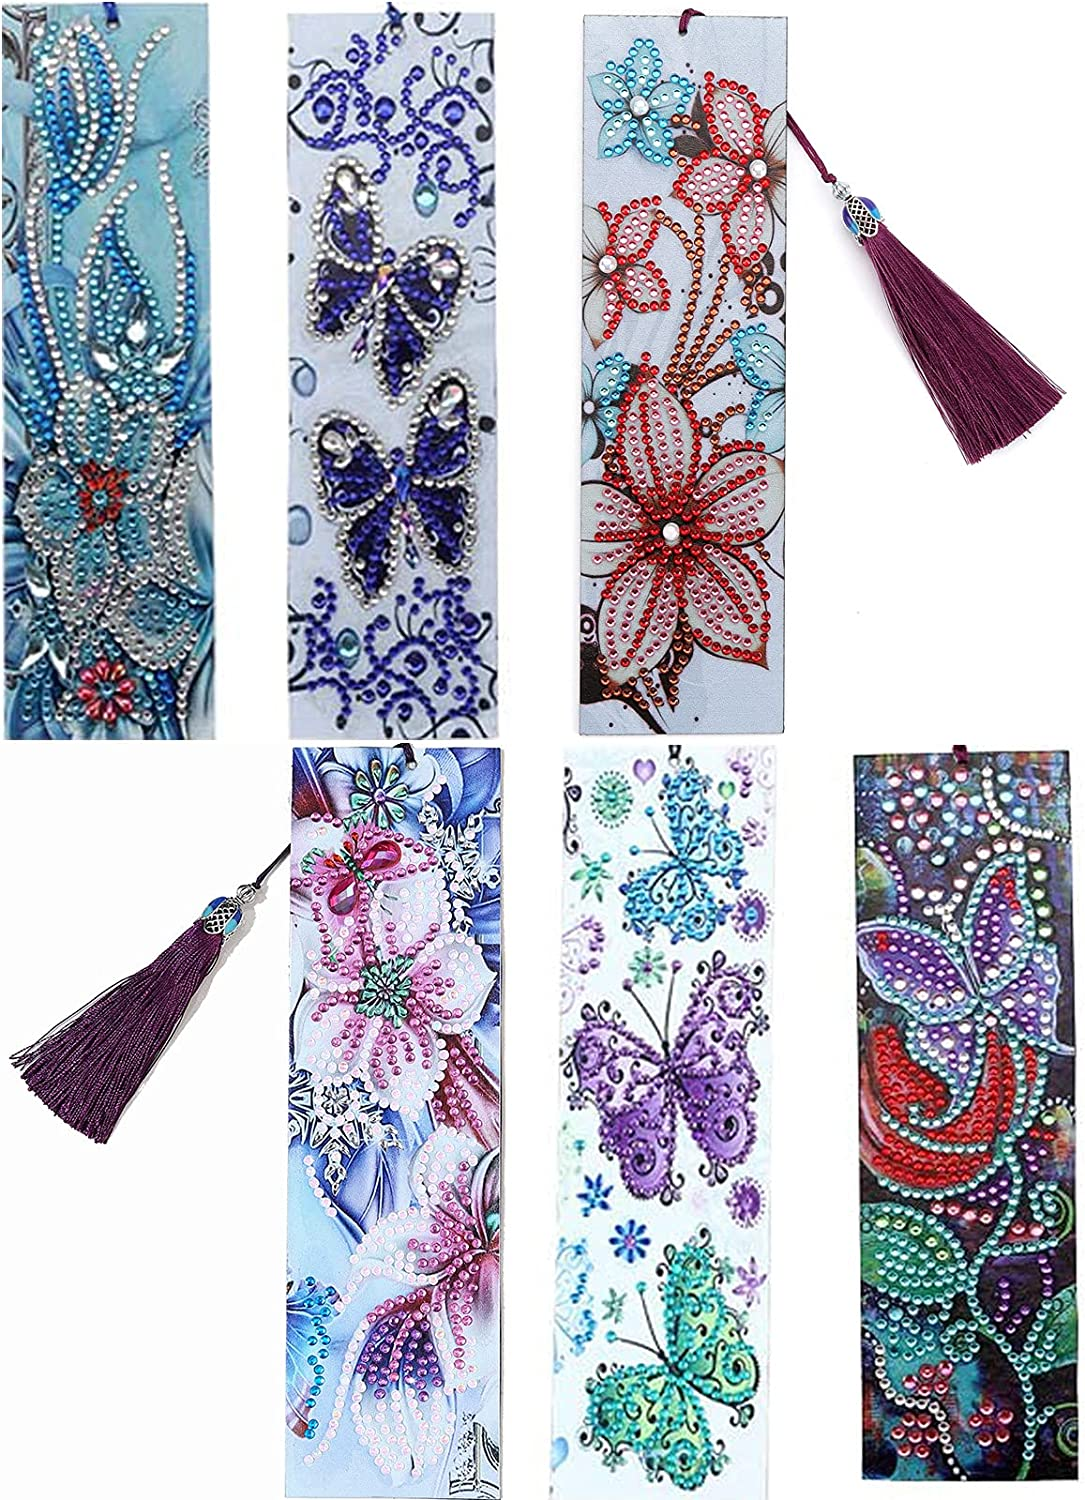 6 Pack Bookmarks 5D Painting Seasonal Wrap Max 84% OFF Introduction Diamond Butterfly 8.3''Le